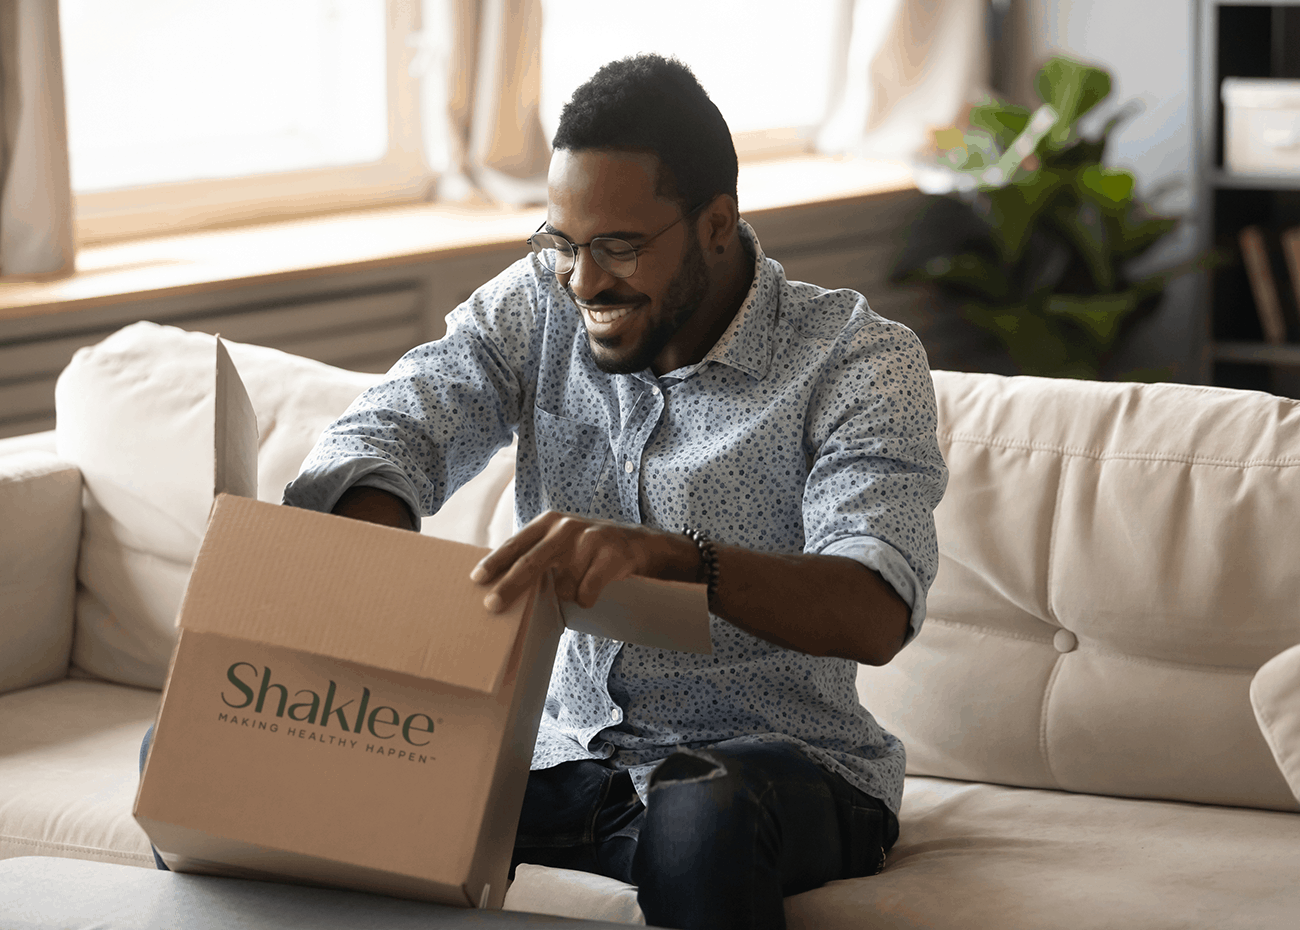 Shaklee takes care of shipping the products for you